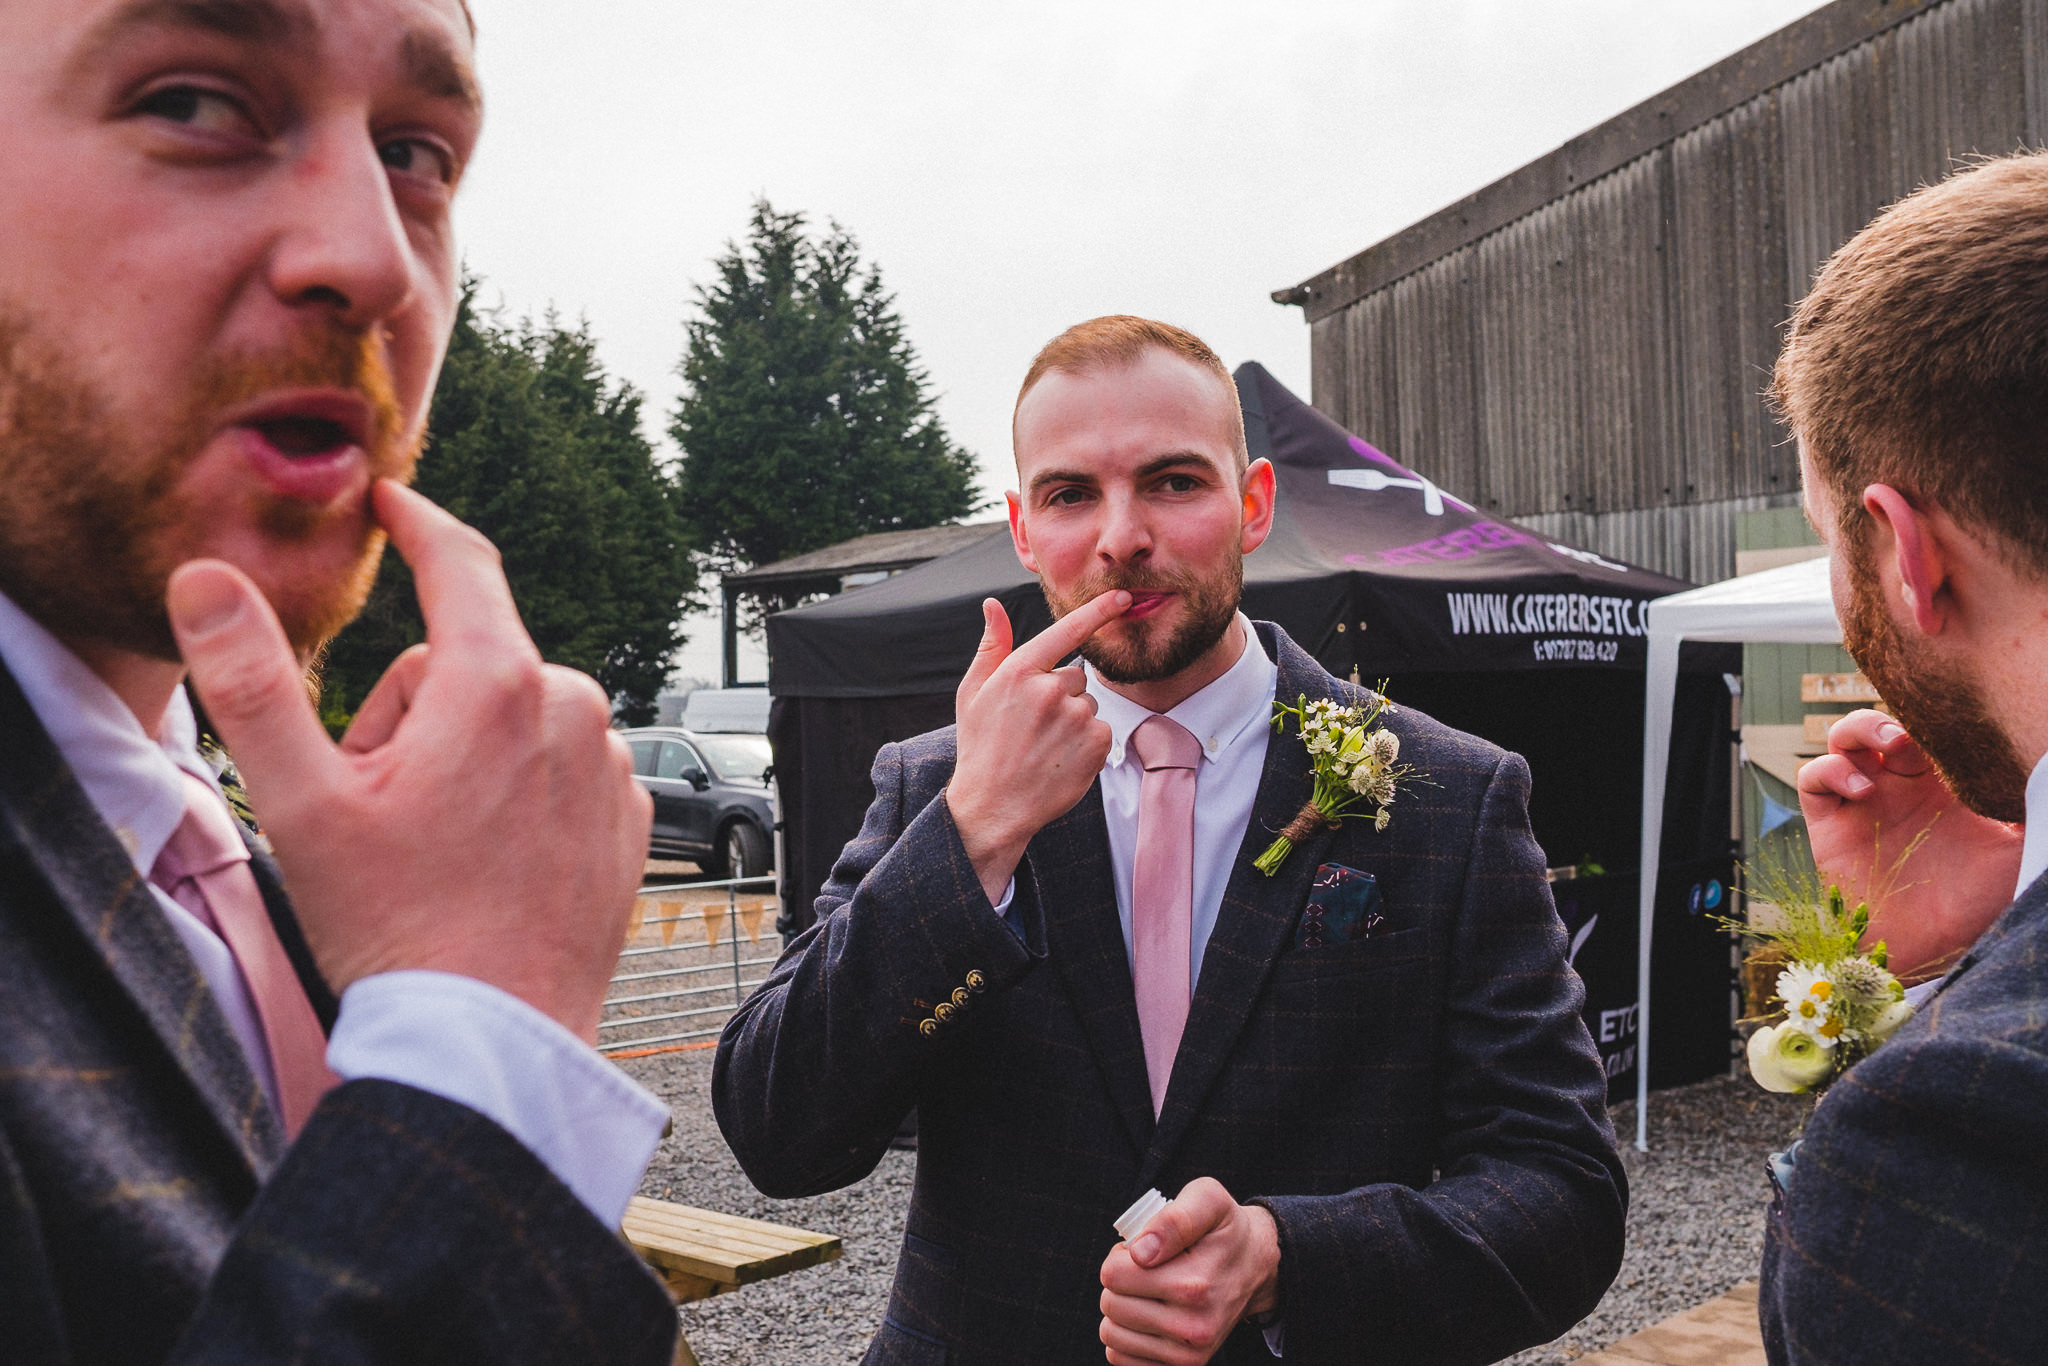 Candid photo of groomsmen applying beauty products